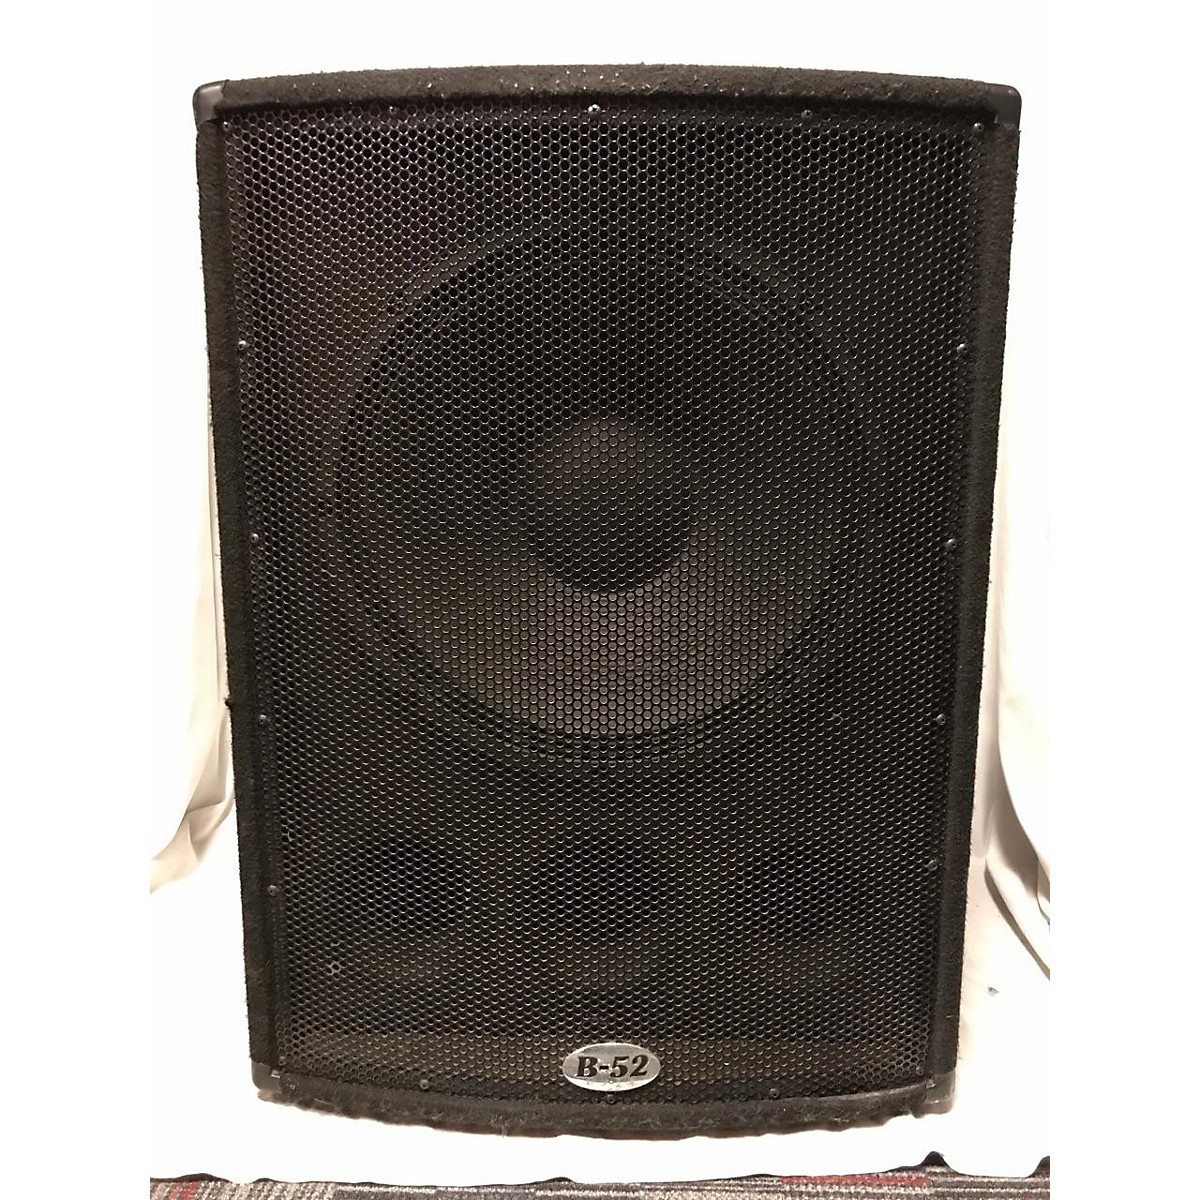 B-52 ACT-18 1200w Powered Subwoofer